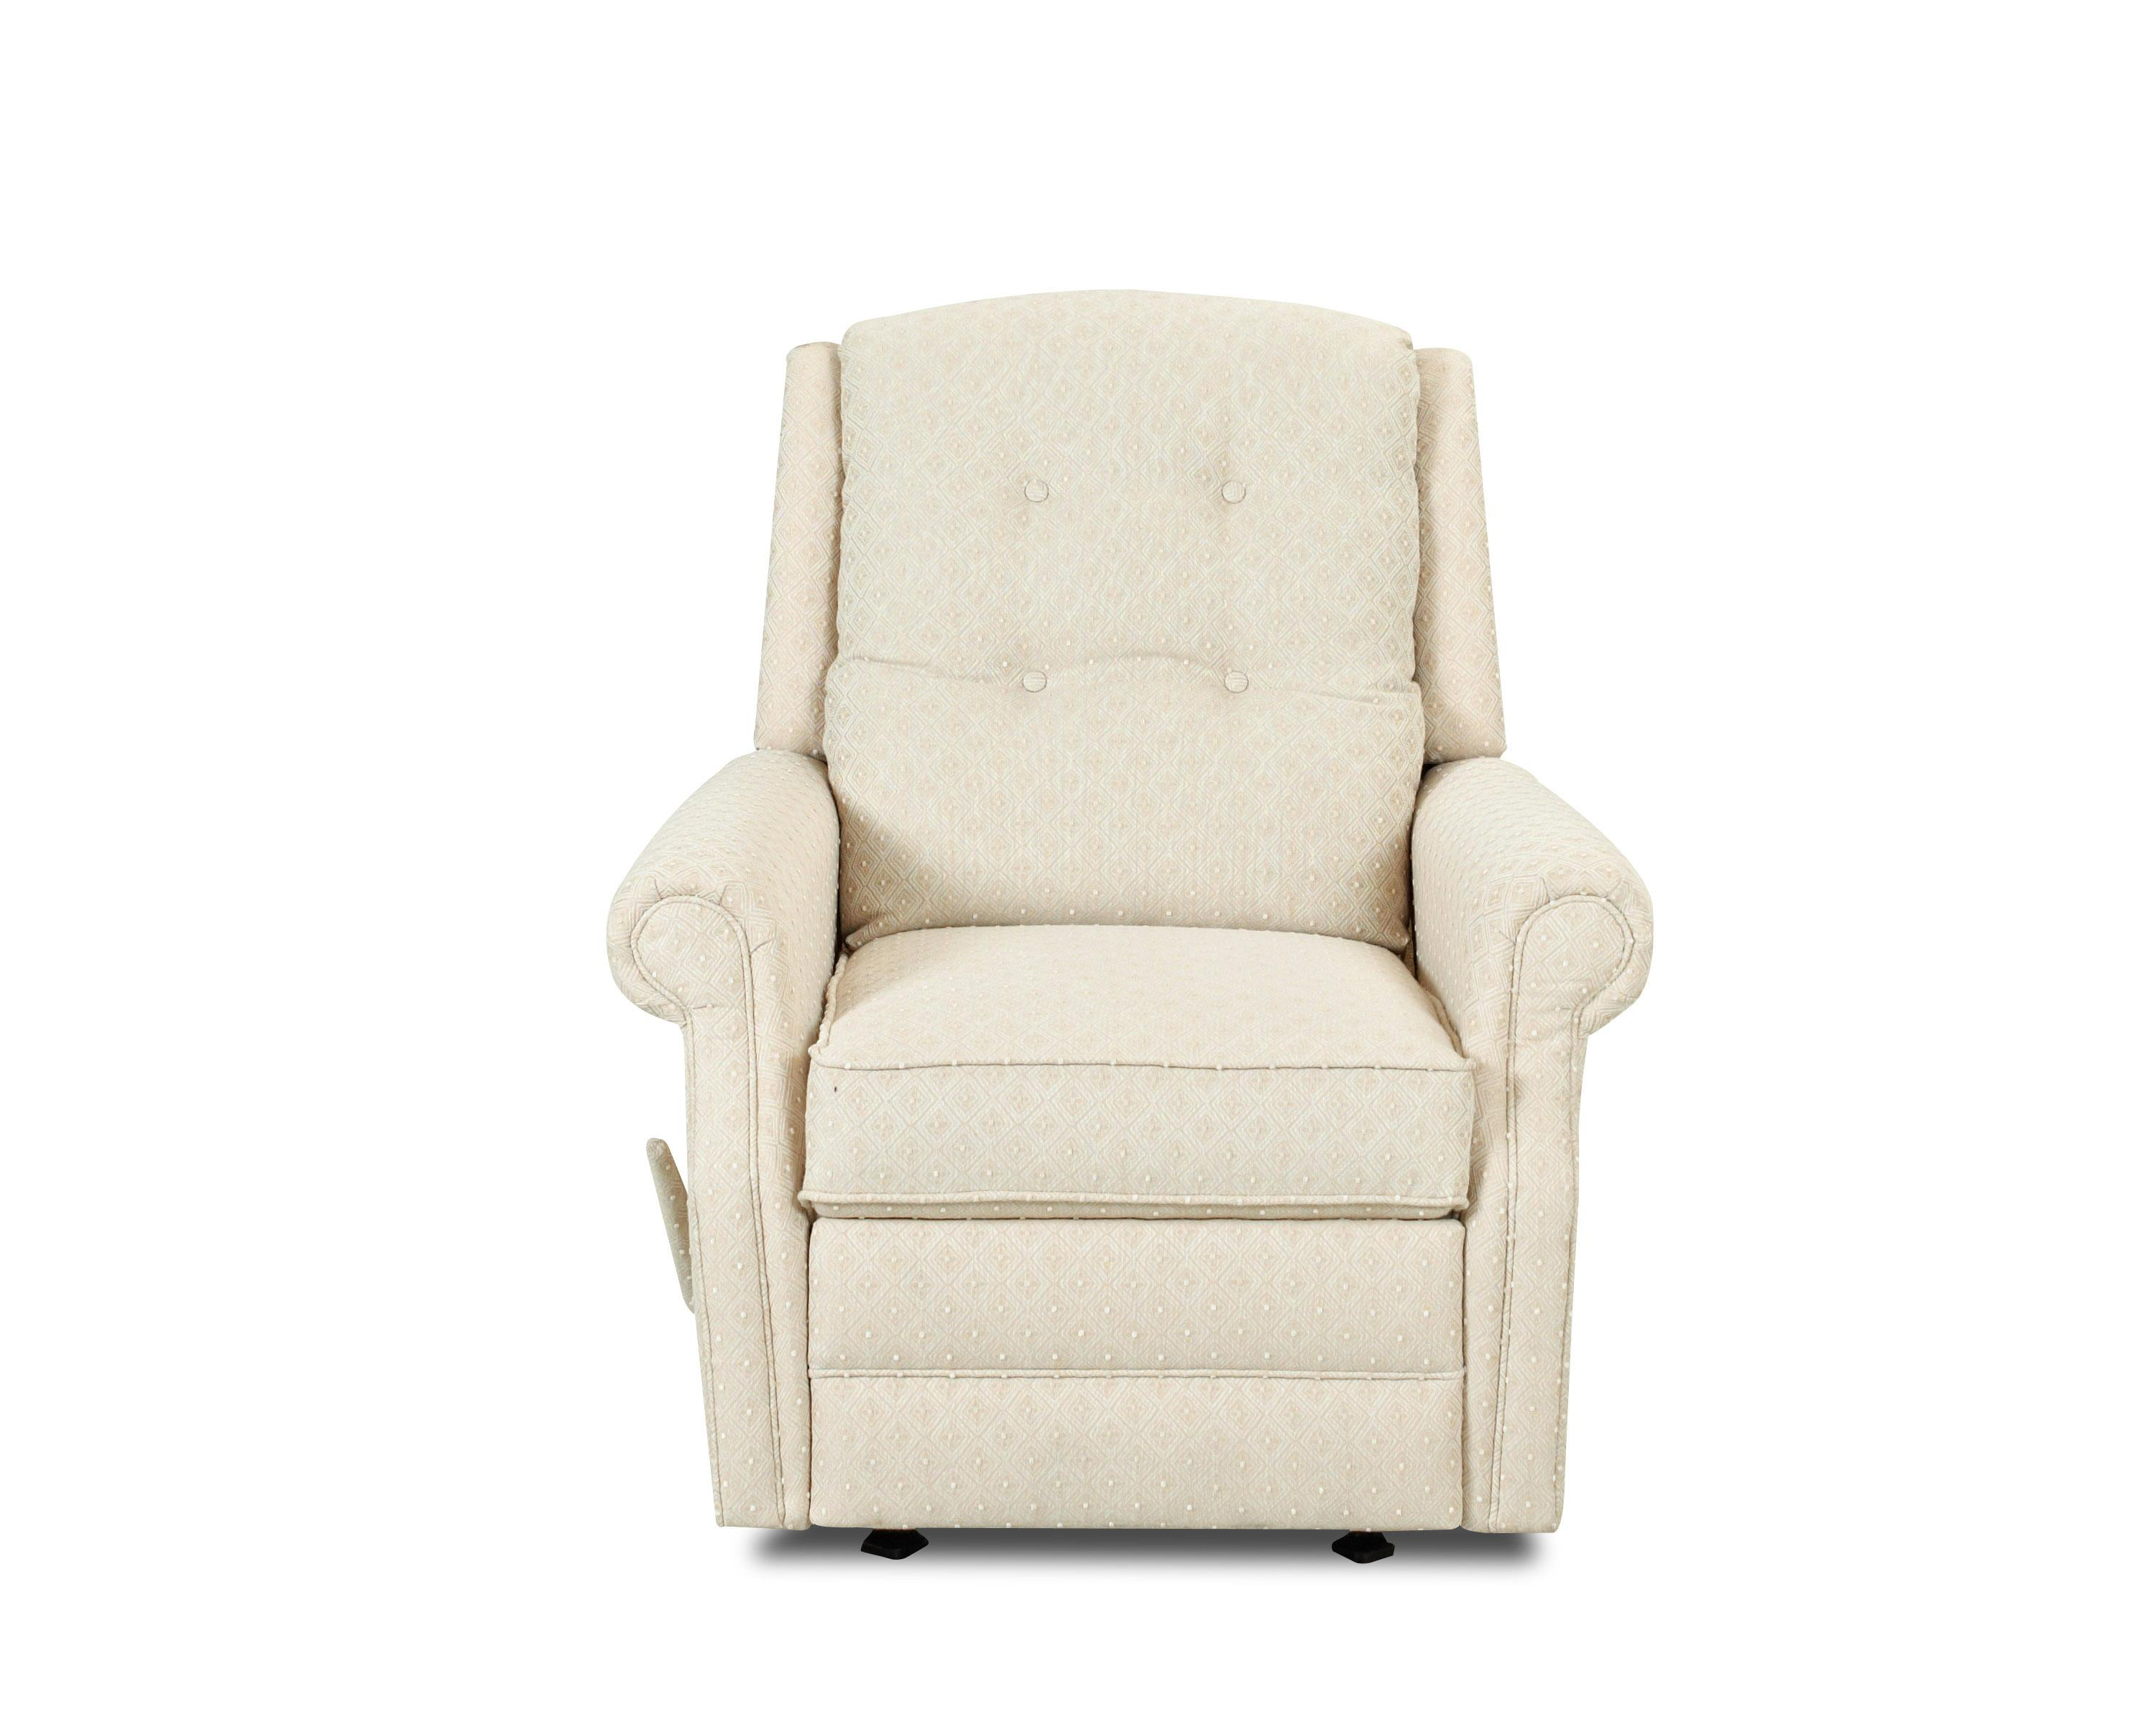 Transitional Power Reclining Chair with Rolled Arms and Button Tufting